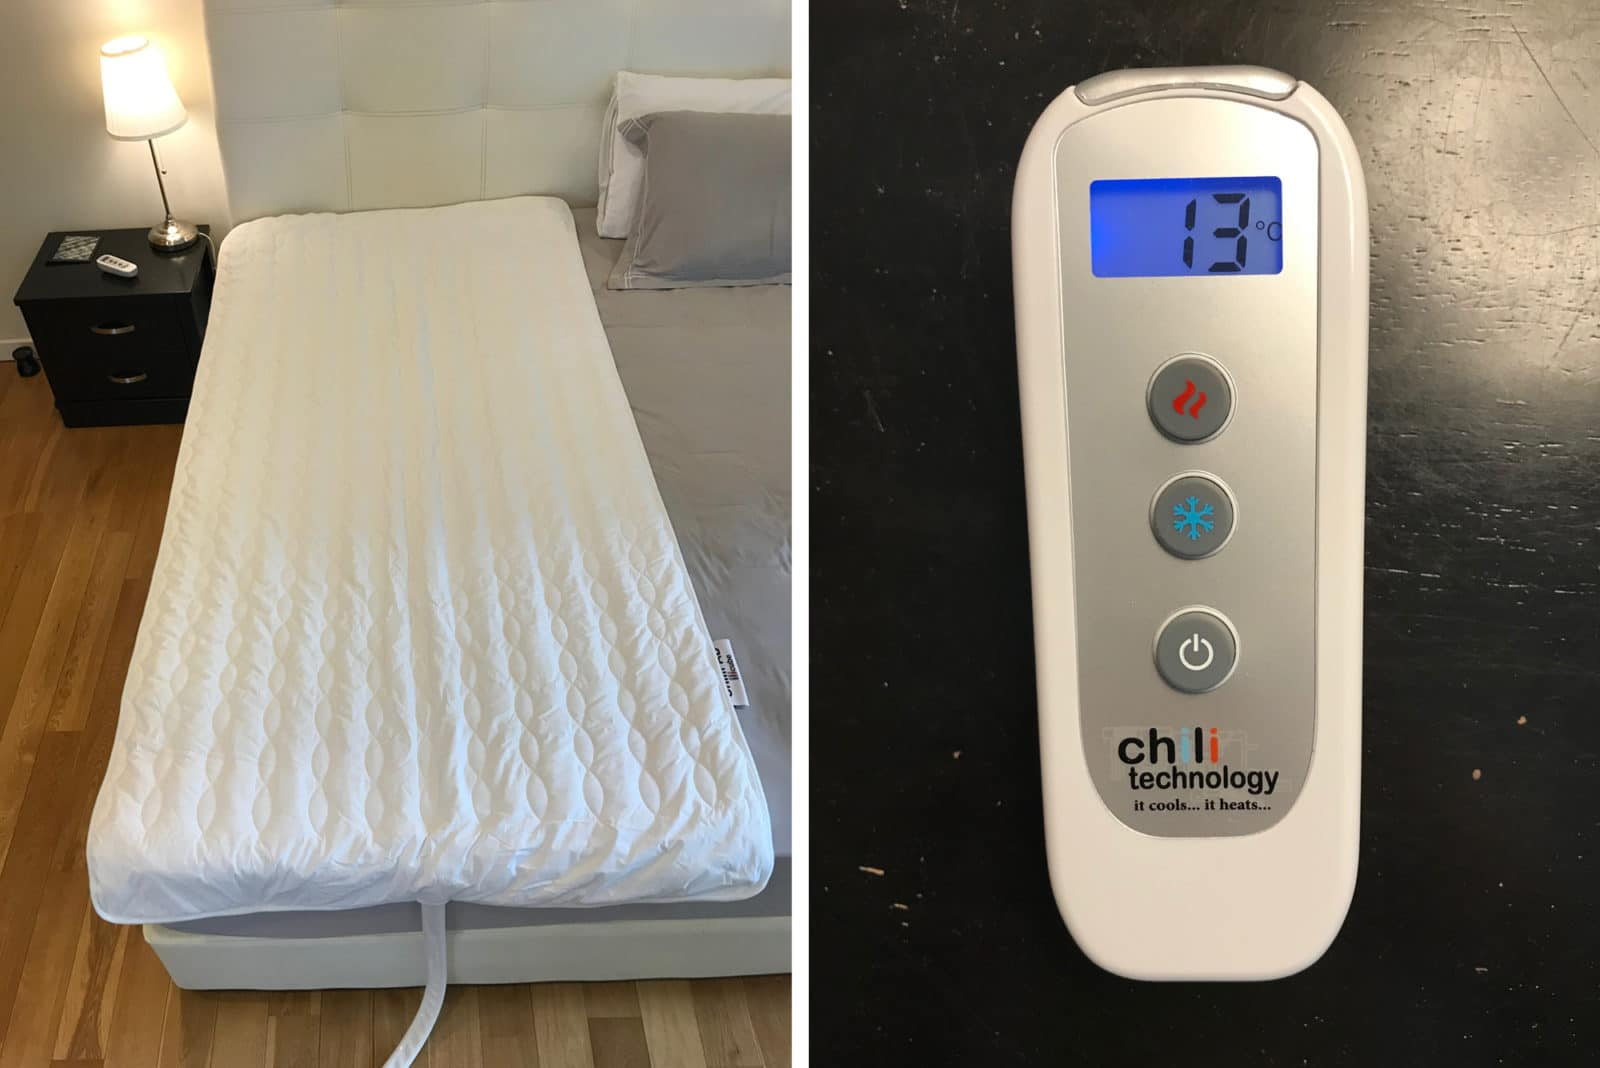 mattress pad and remote